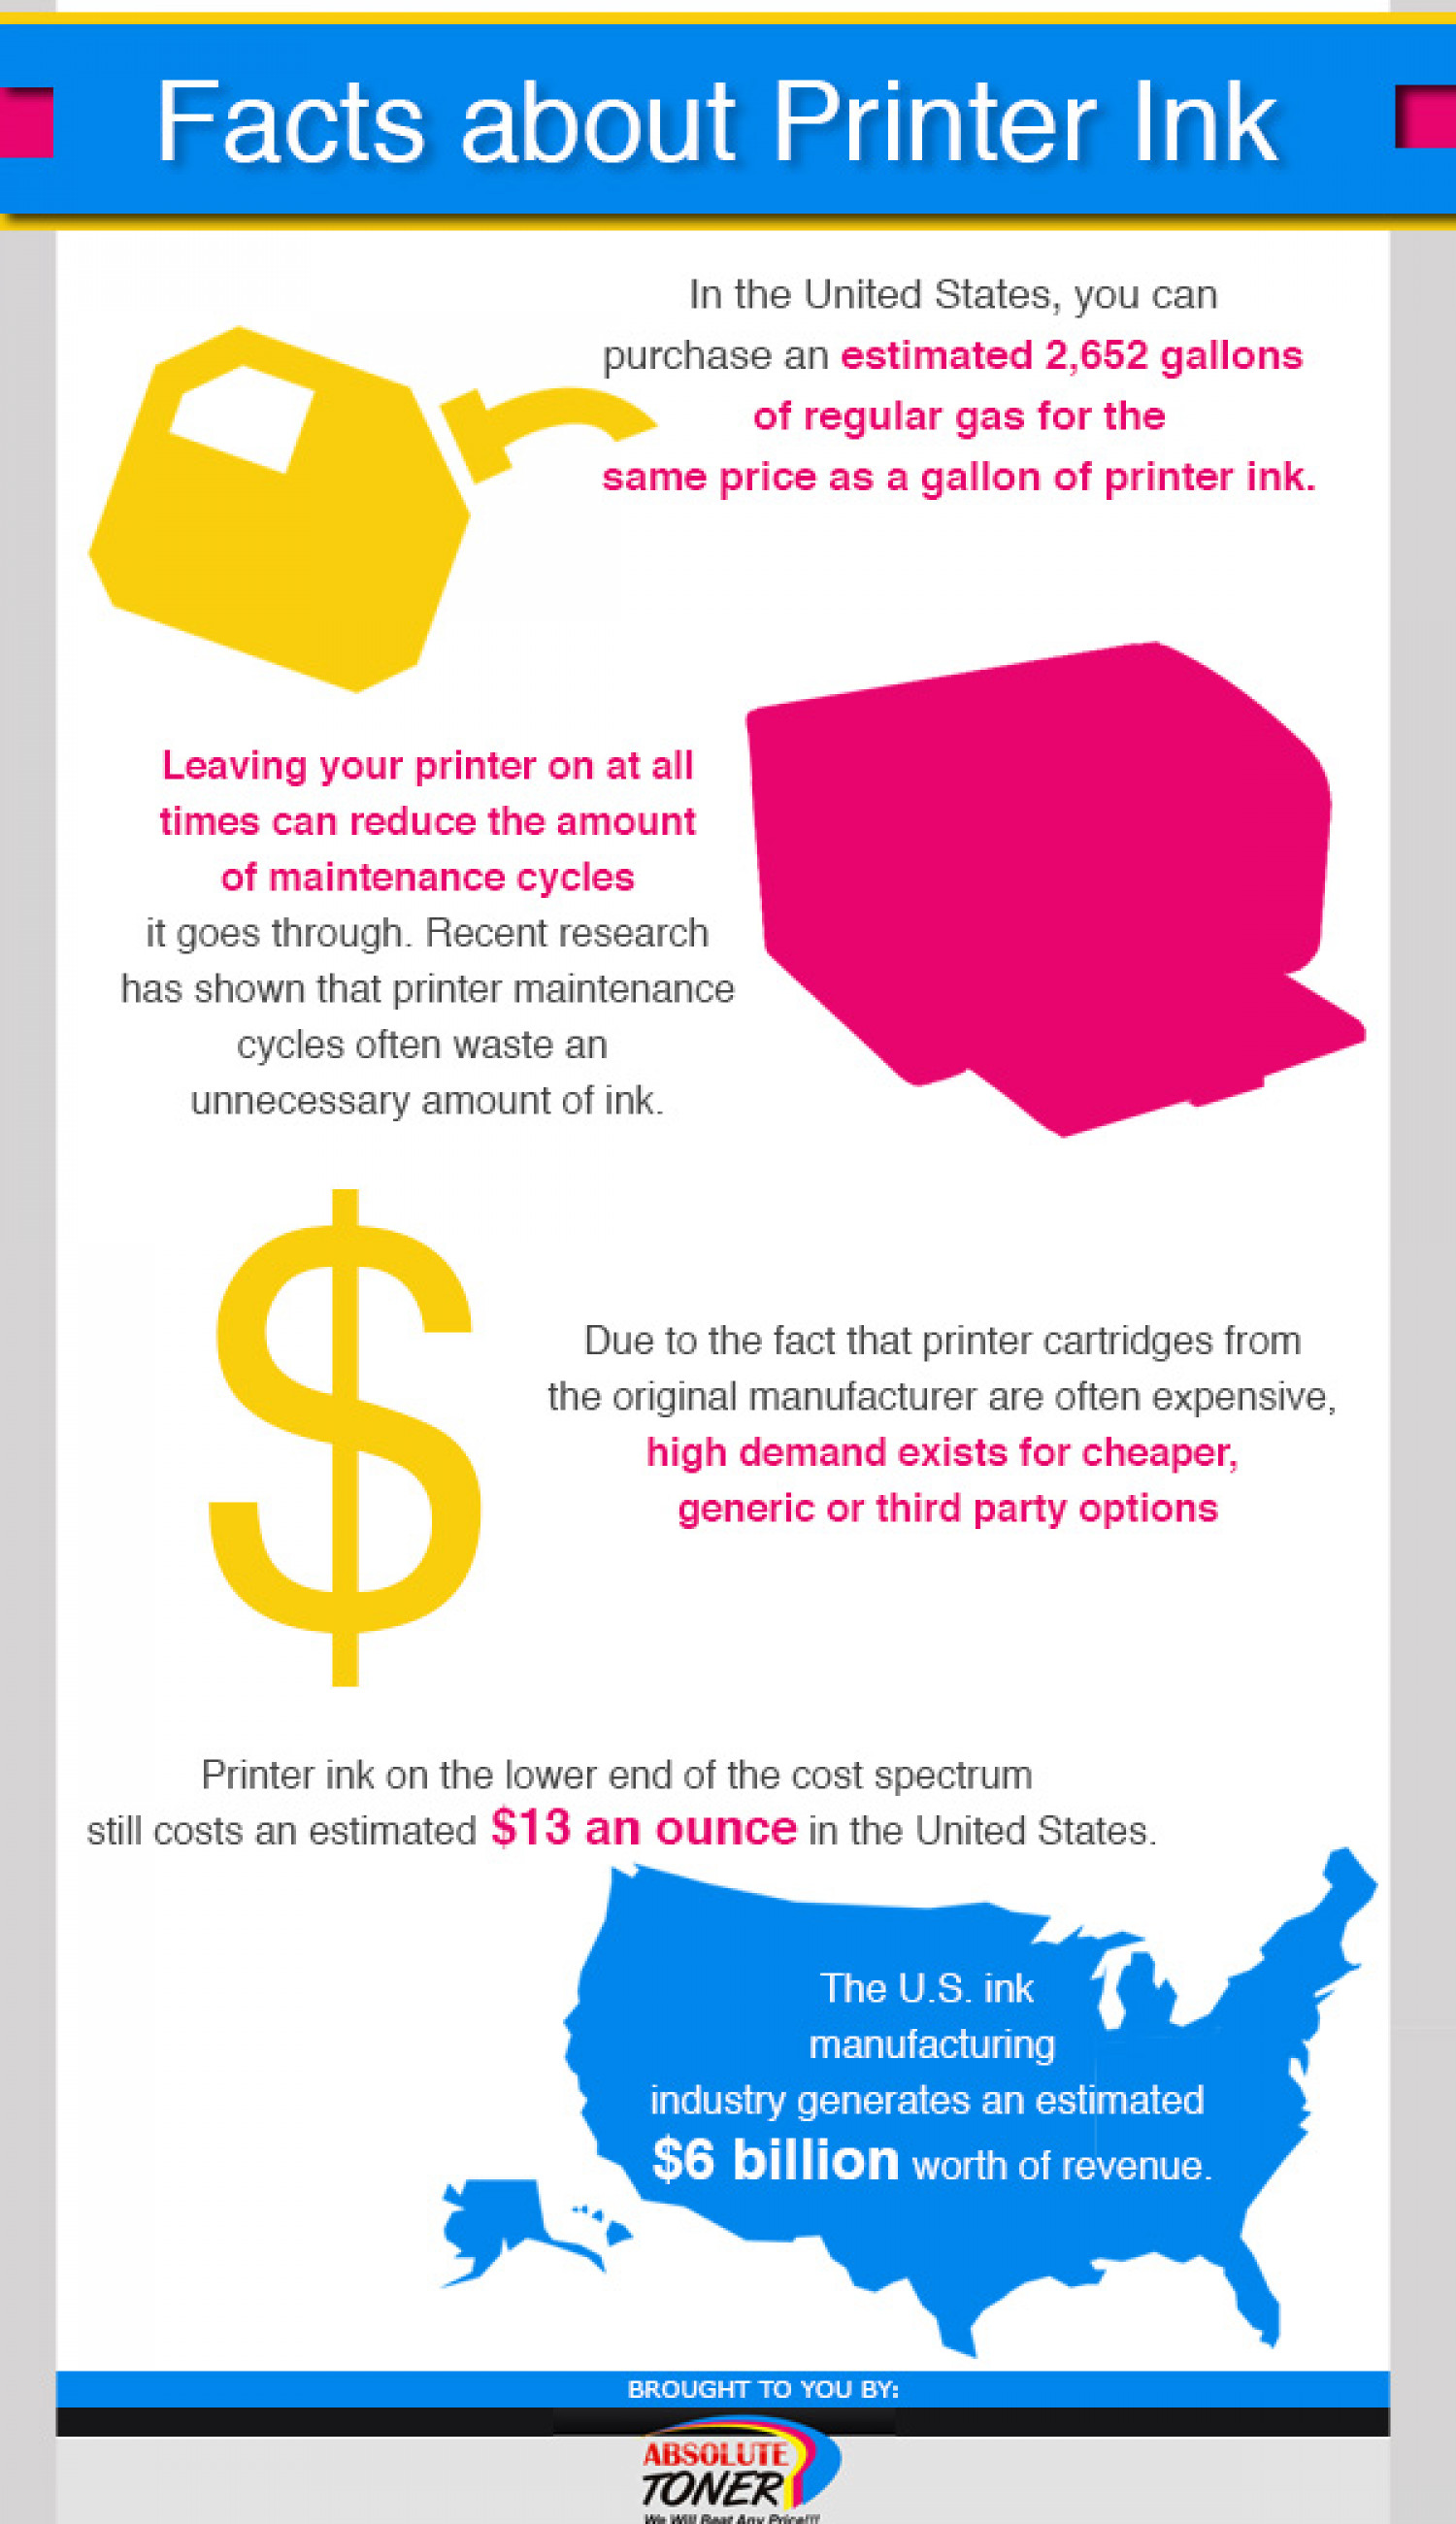 Facts About Printer Ink Infographic